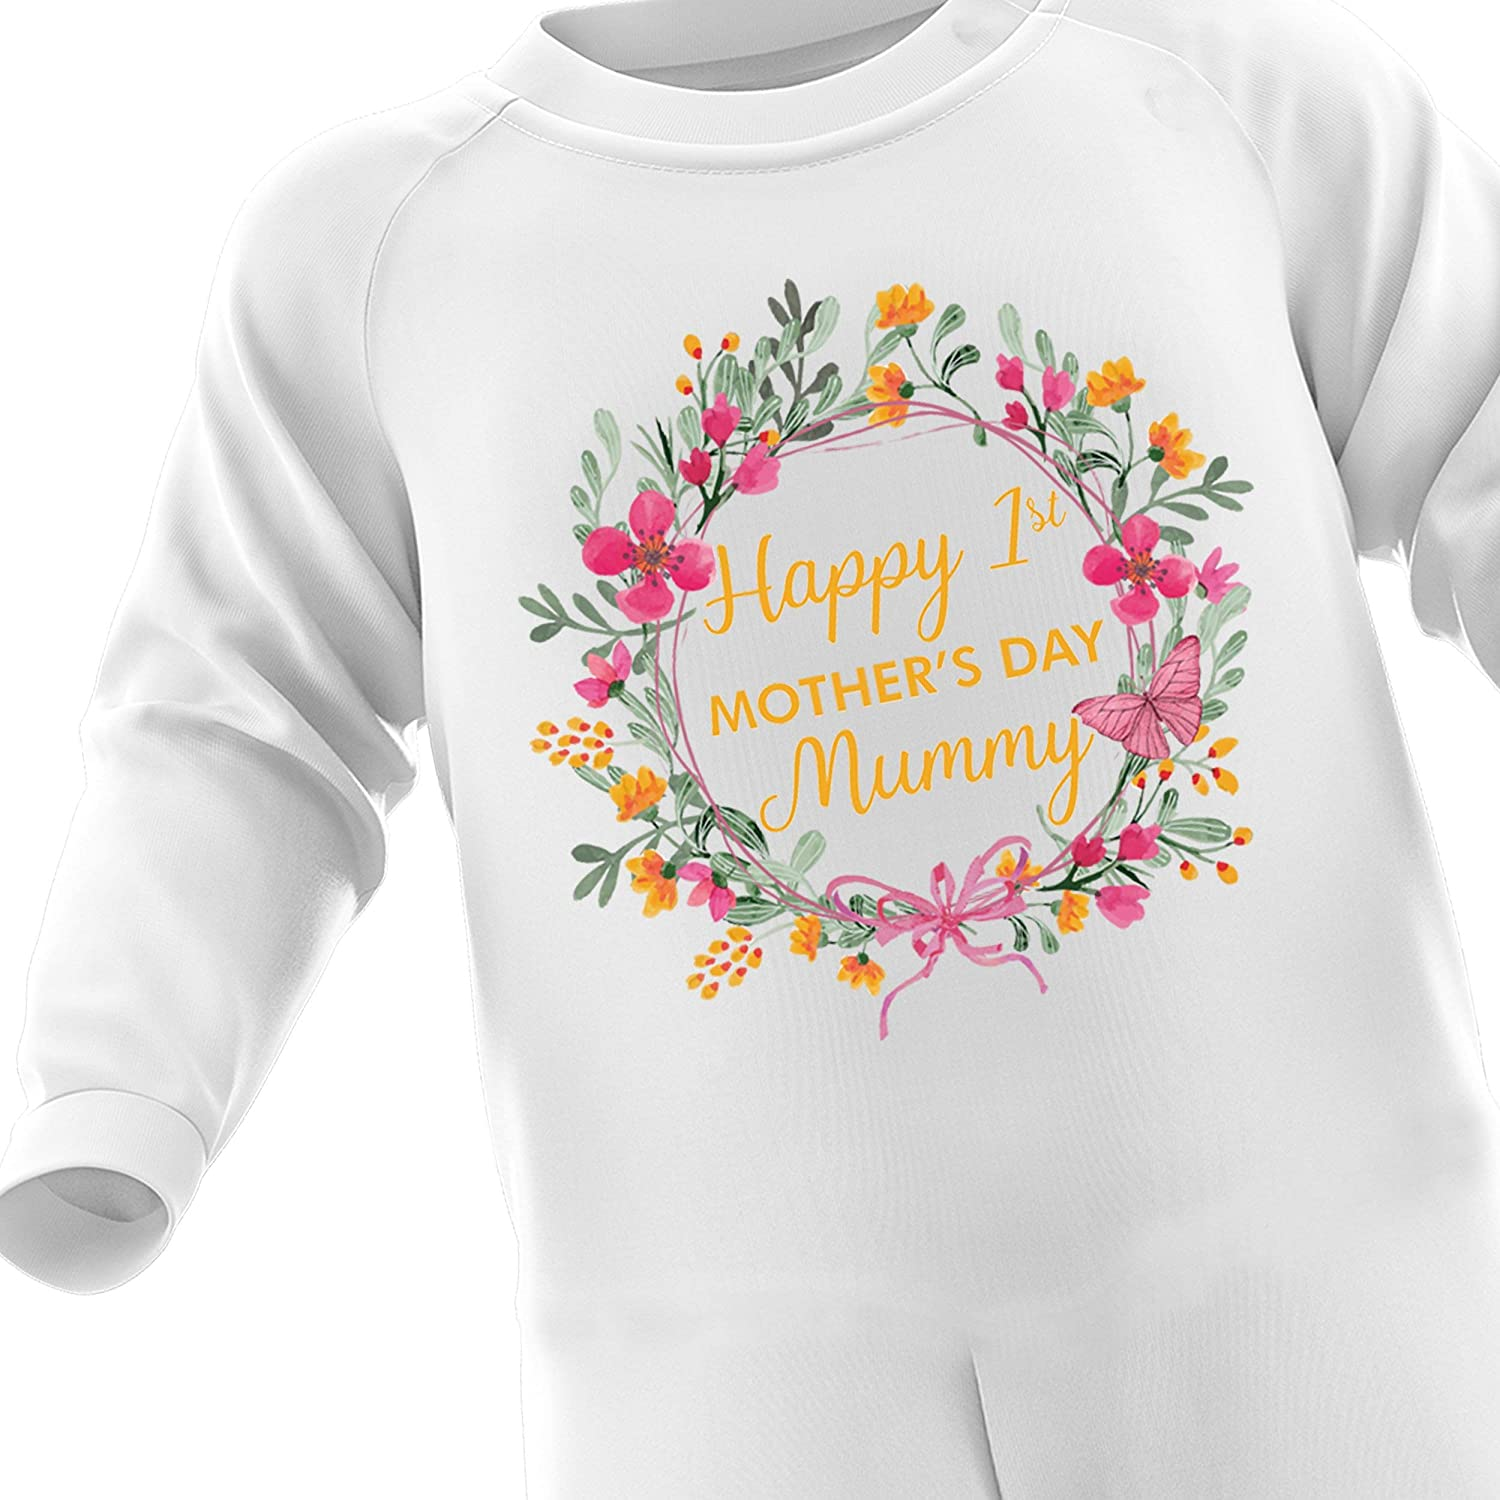 FunkyShirt Happy First Mothers Day Orange Flower Romper Baby Suit Outfit for First Time Mummy Gifts Newborn Baby Toddler Baby Boy Baby Girl Bodysuit